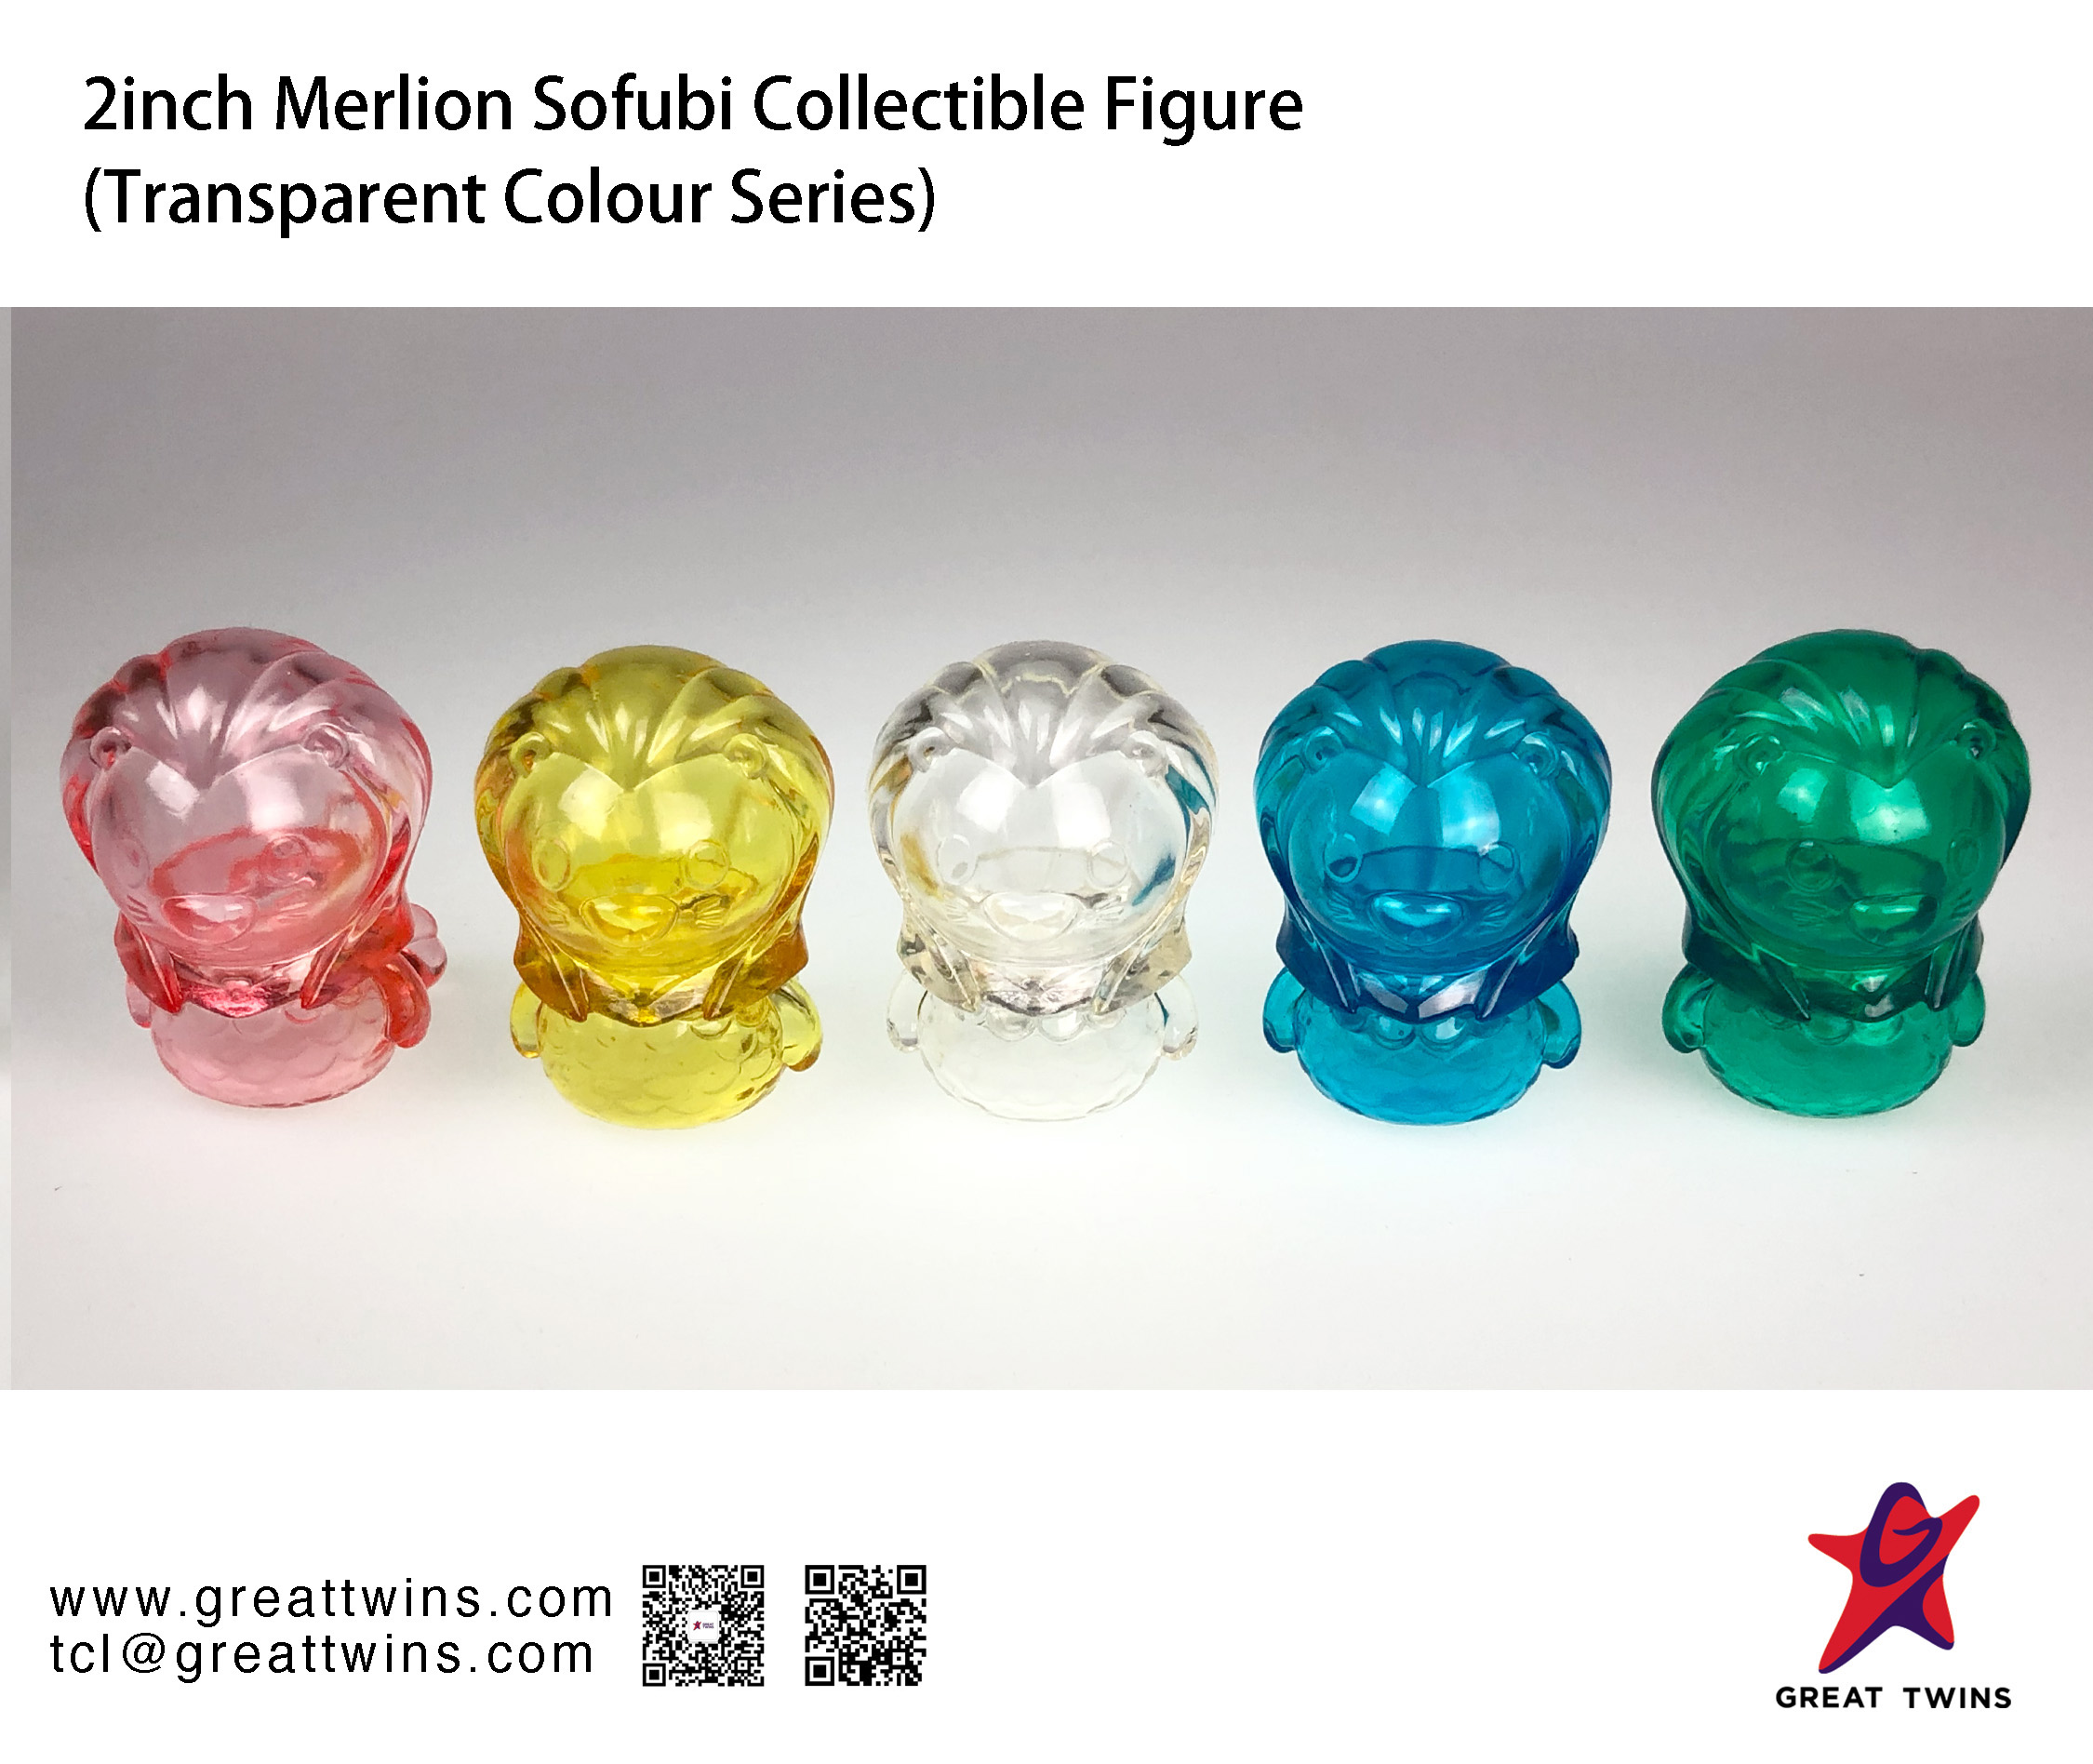 2inch_Merlion_Sofubi_Collectible_Figure_Transparent_Colour_Series_English_1